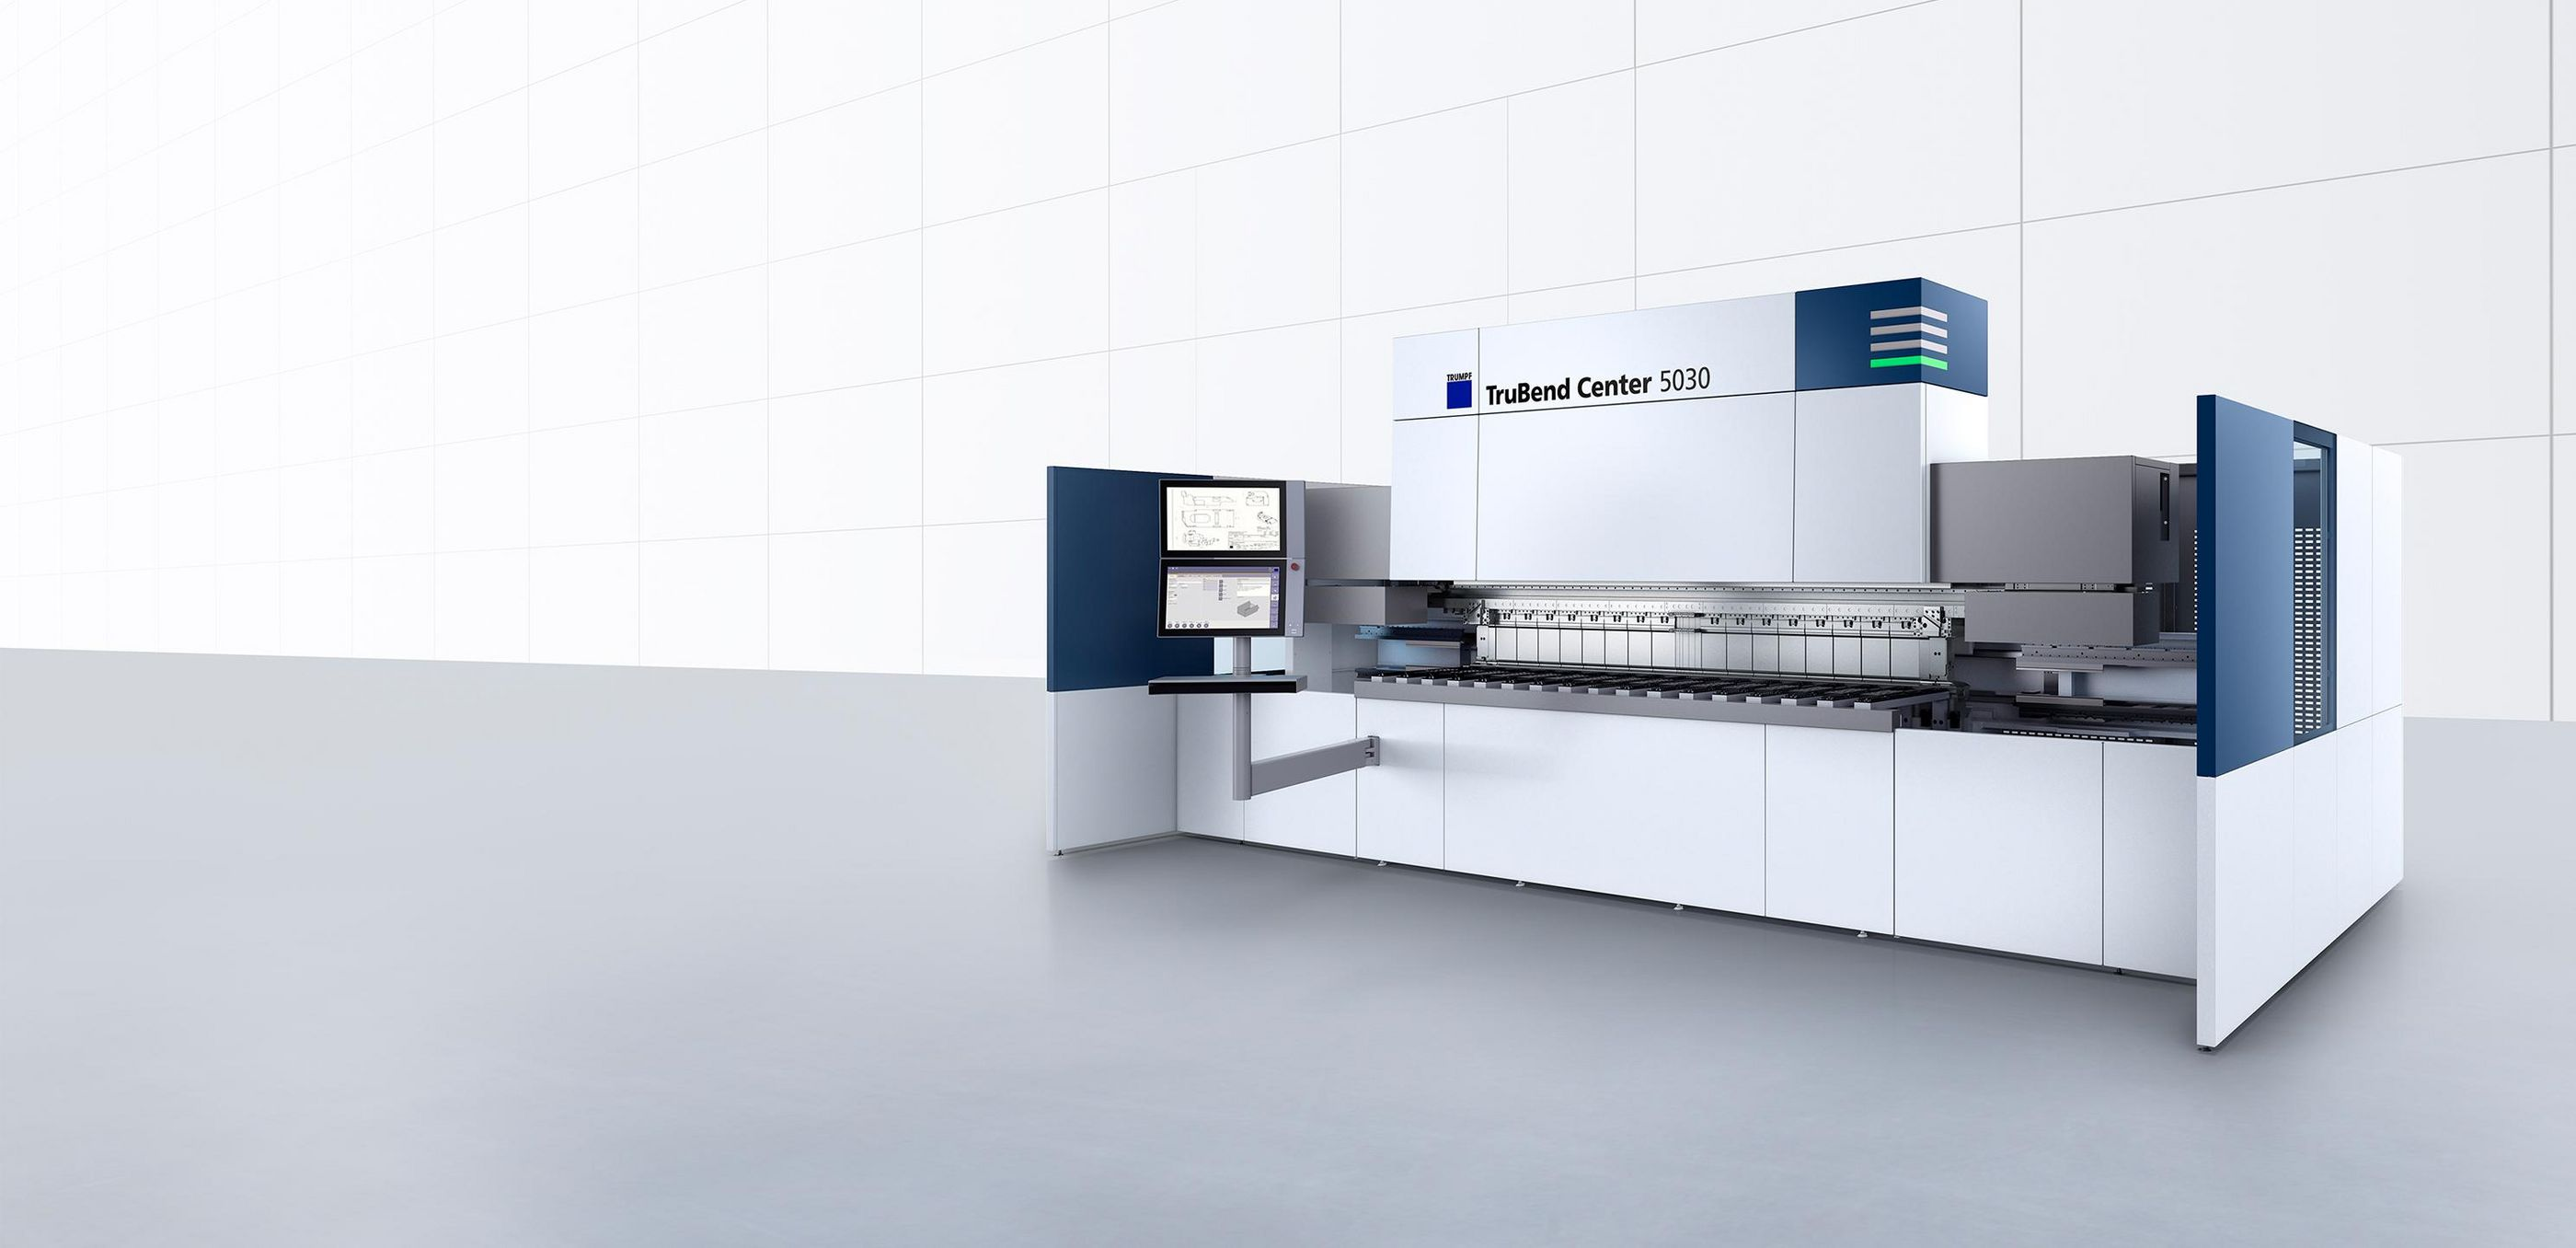 TruBend Center Series 5000, productive all-round machine